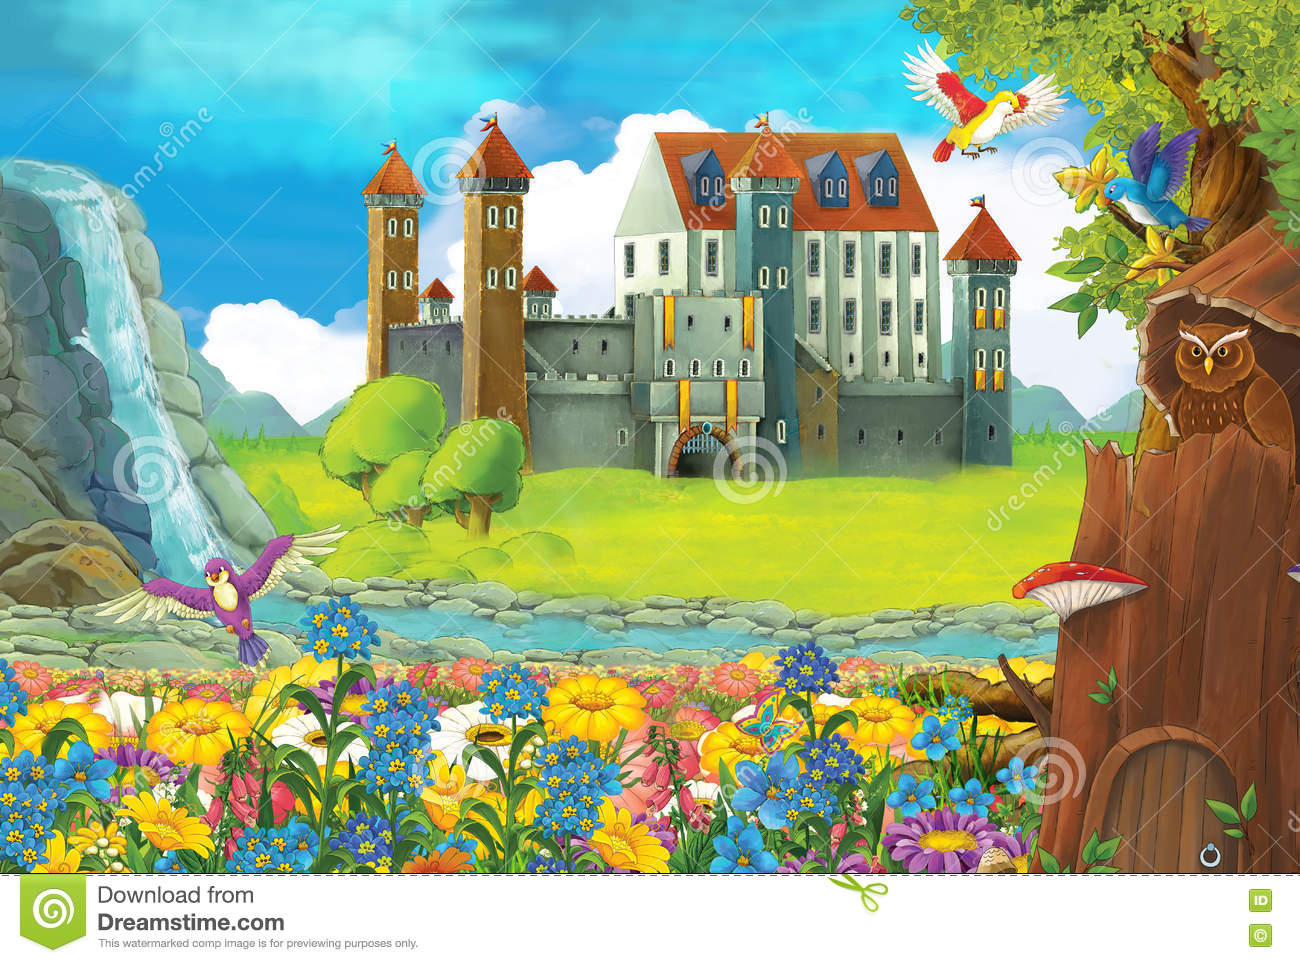 Cartoon Scene With A Castle And A Tree House In The Forest